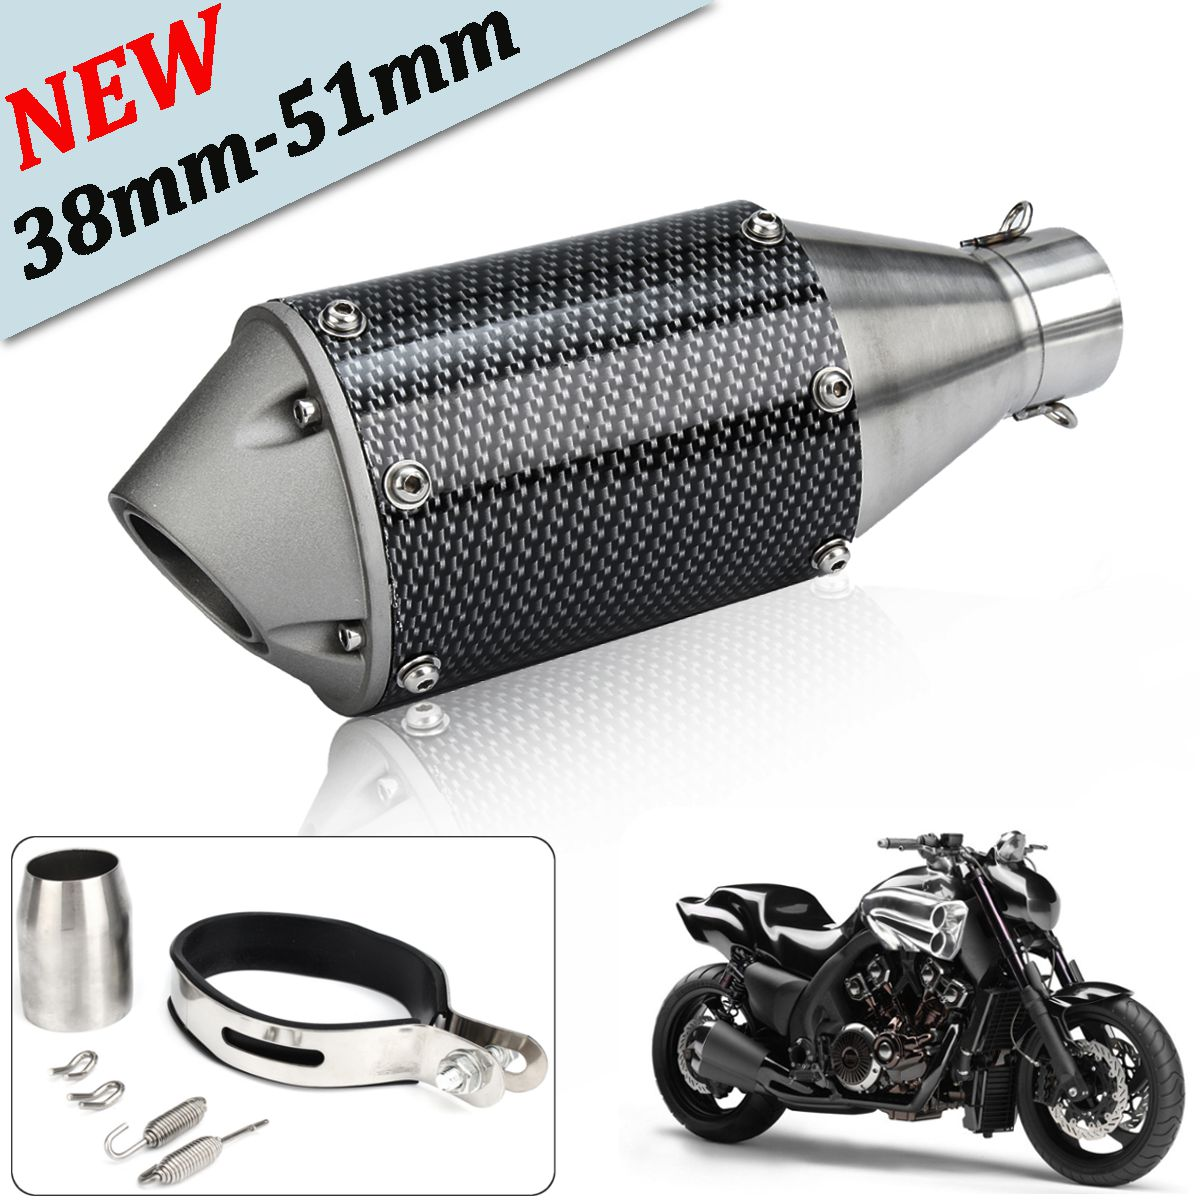 Autoleader 38-51mm Universal Carbon Fiber Motorcycle Exhaust Muffler Pipe For Dirt Bike ATV laser mark motorcycle modified muffler sc carbon fiber exhaust pipe for ducati xdiavel s streetfighter s 1100s 1092 848